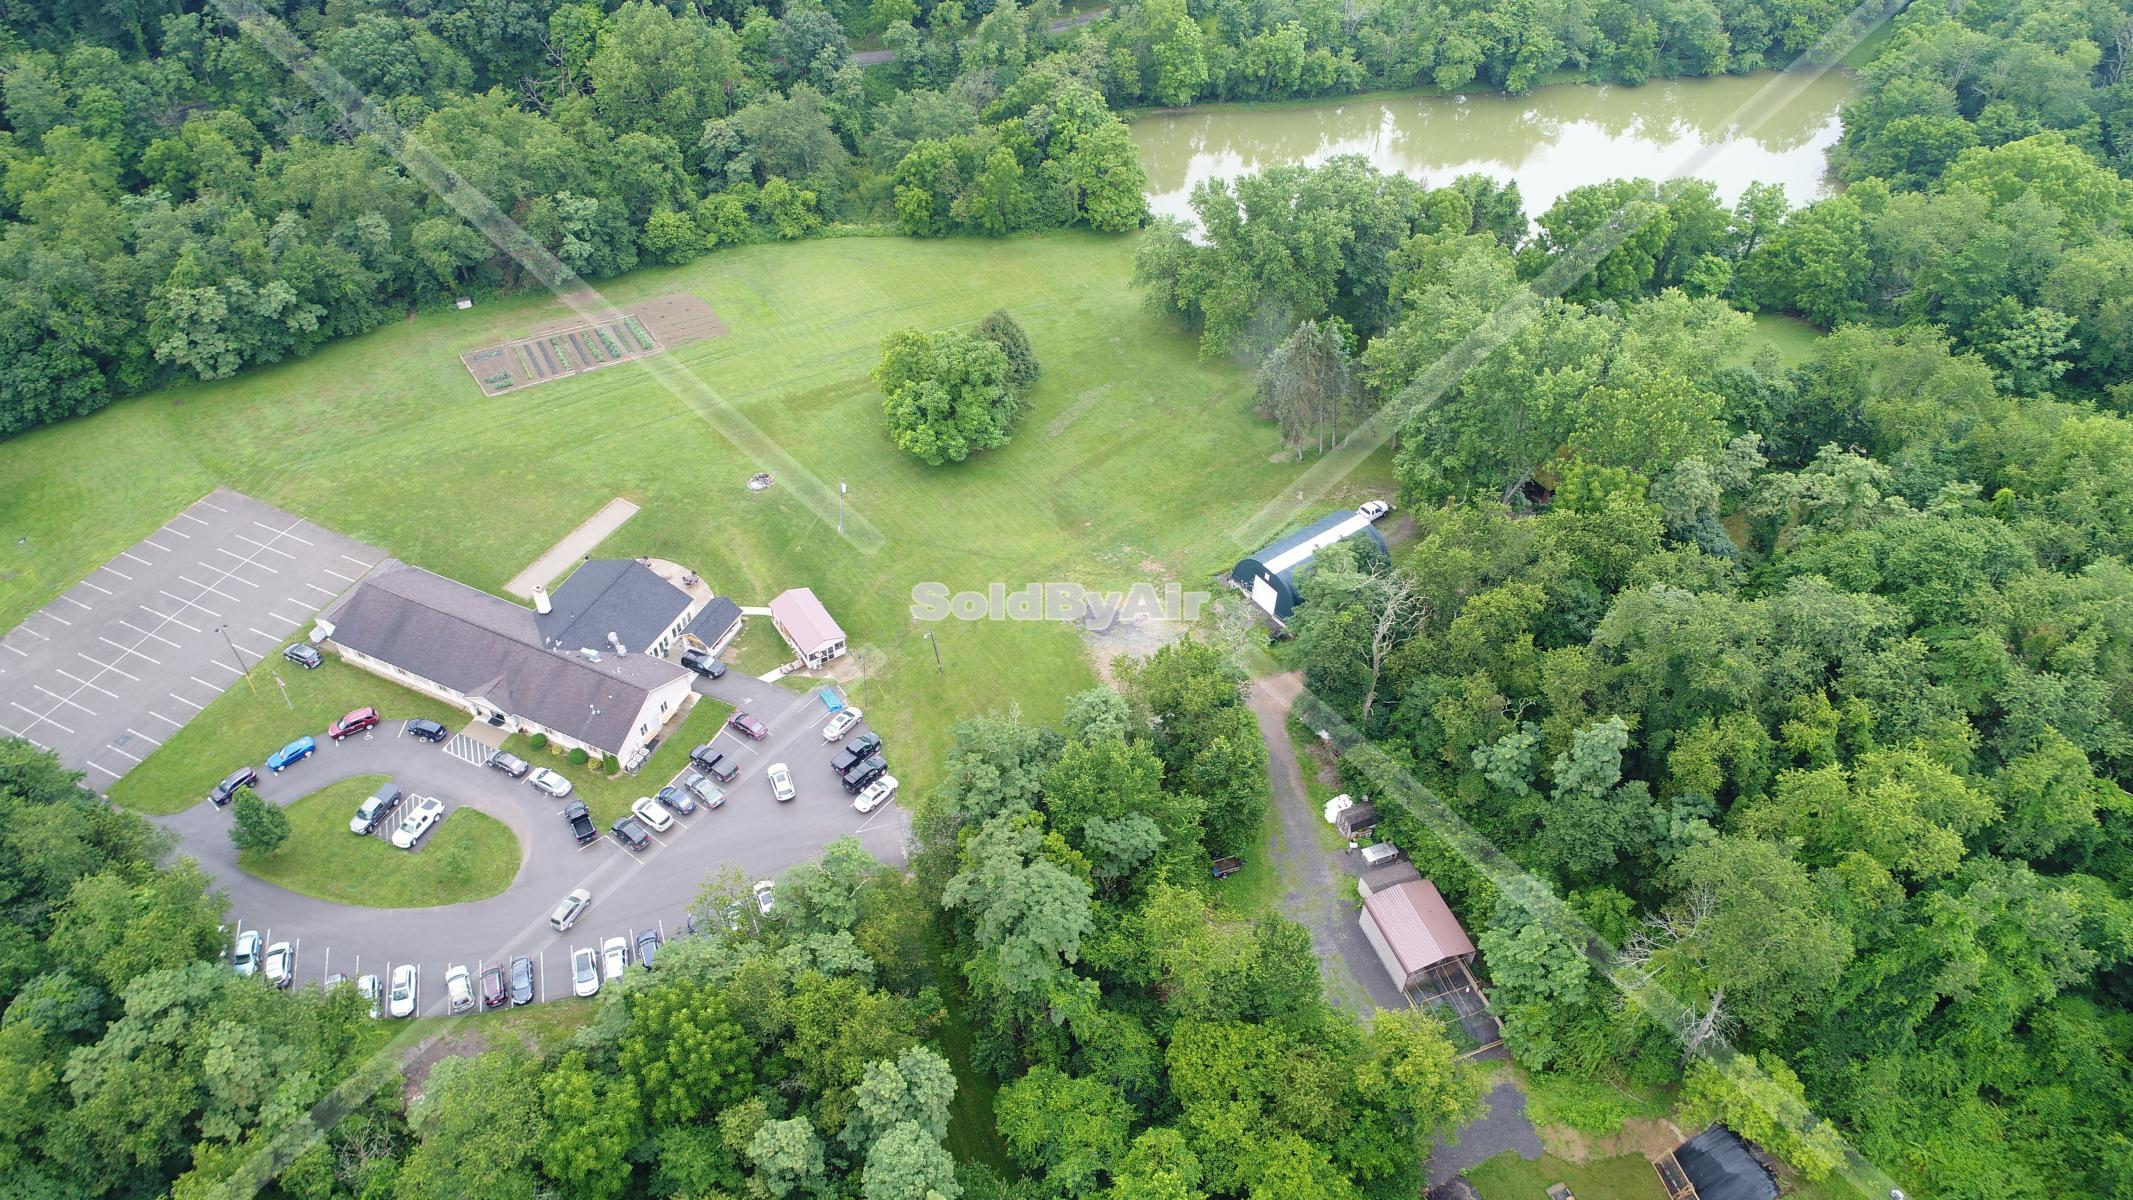 Drone Photo of Clubhouse and Lake at Alpine H&F Club in Bridgeville Pennsylvania